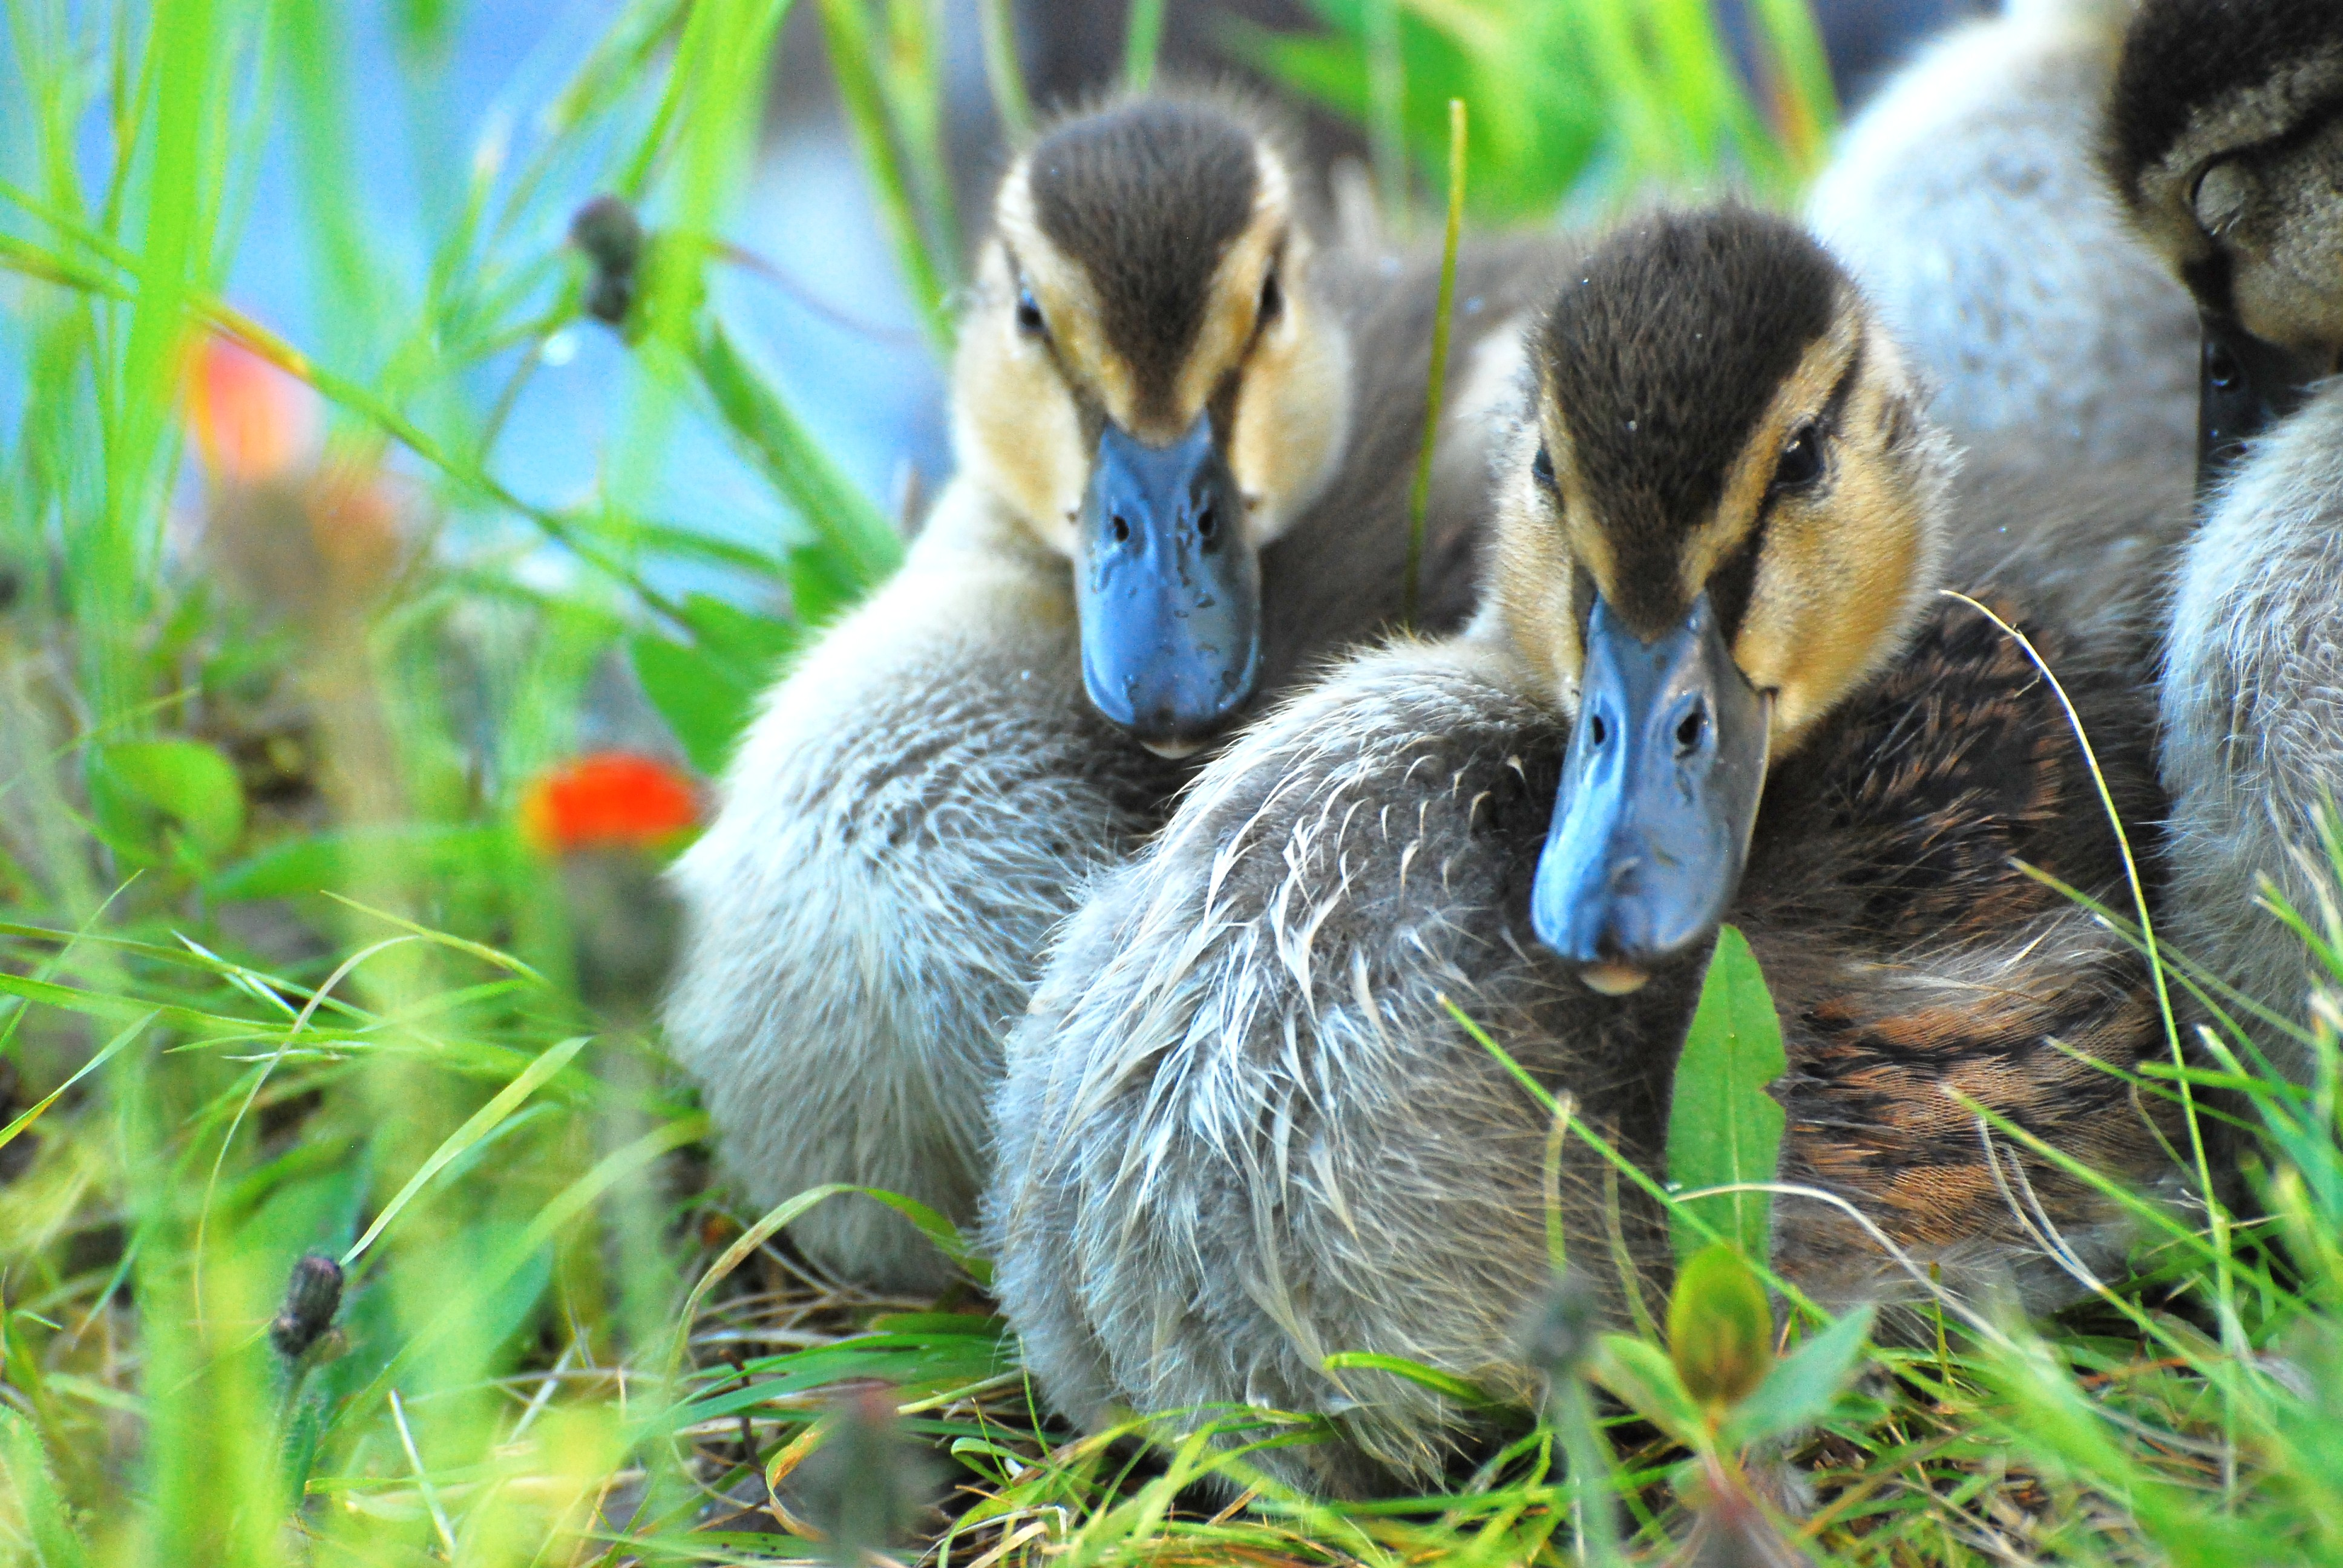 Duck siblings